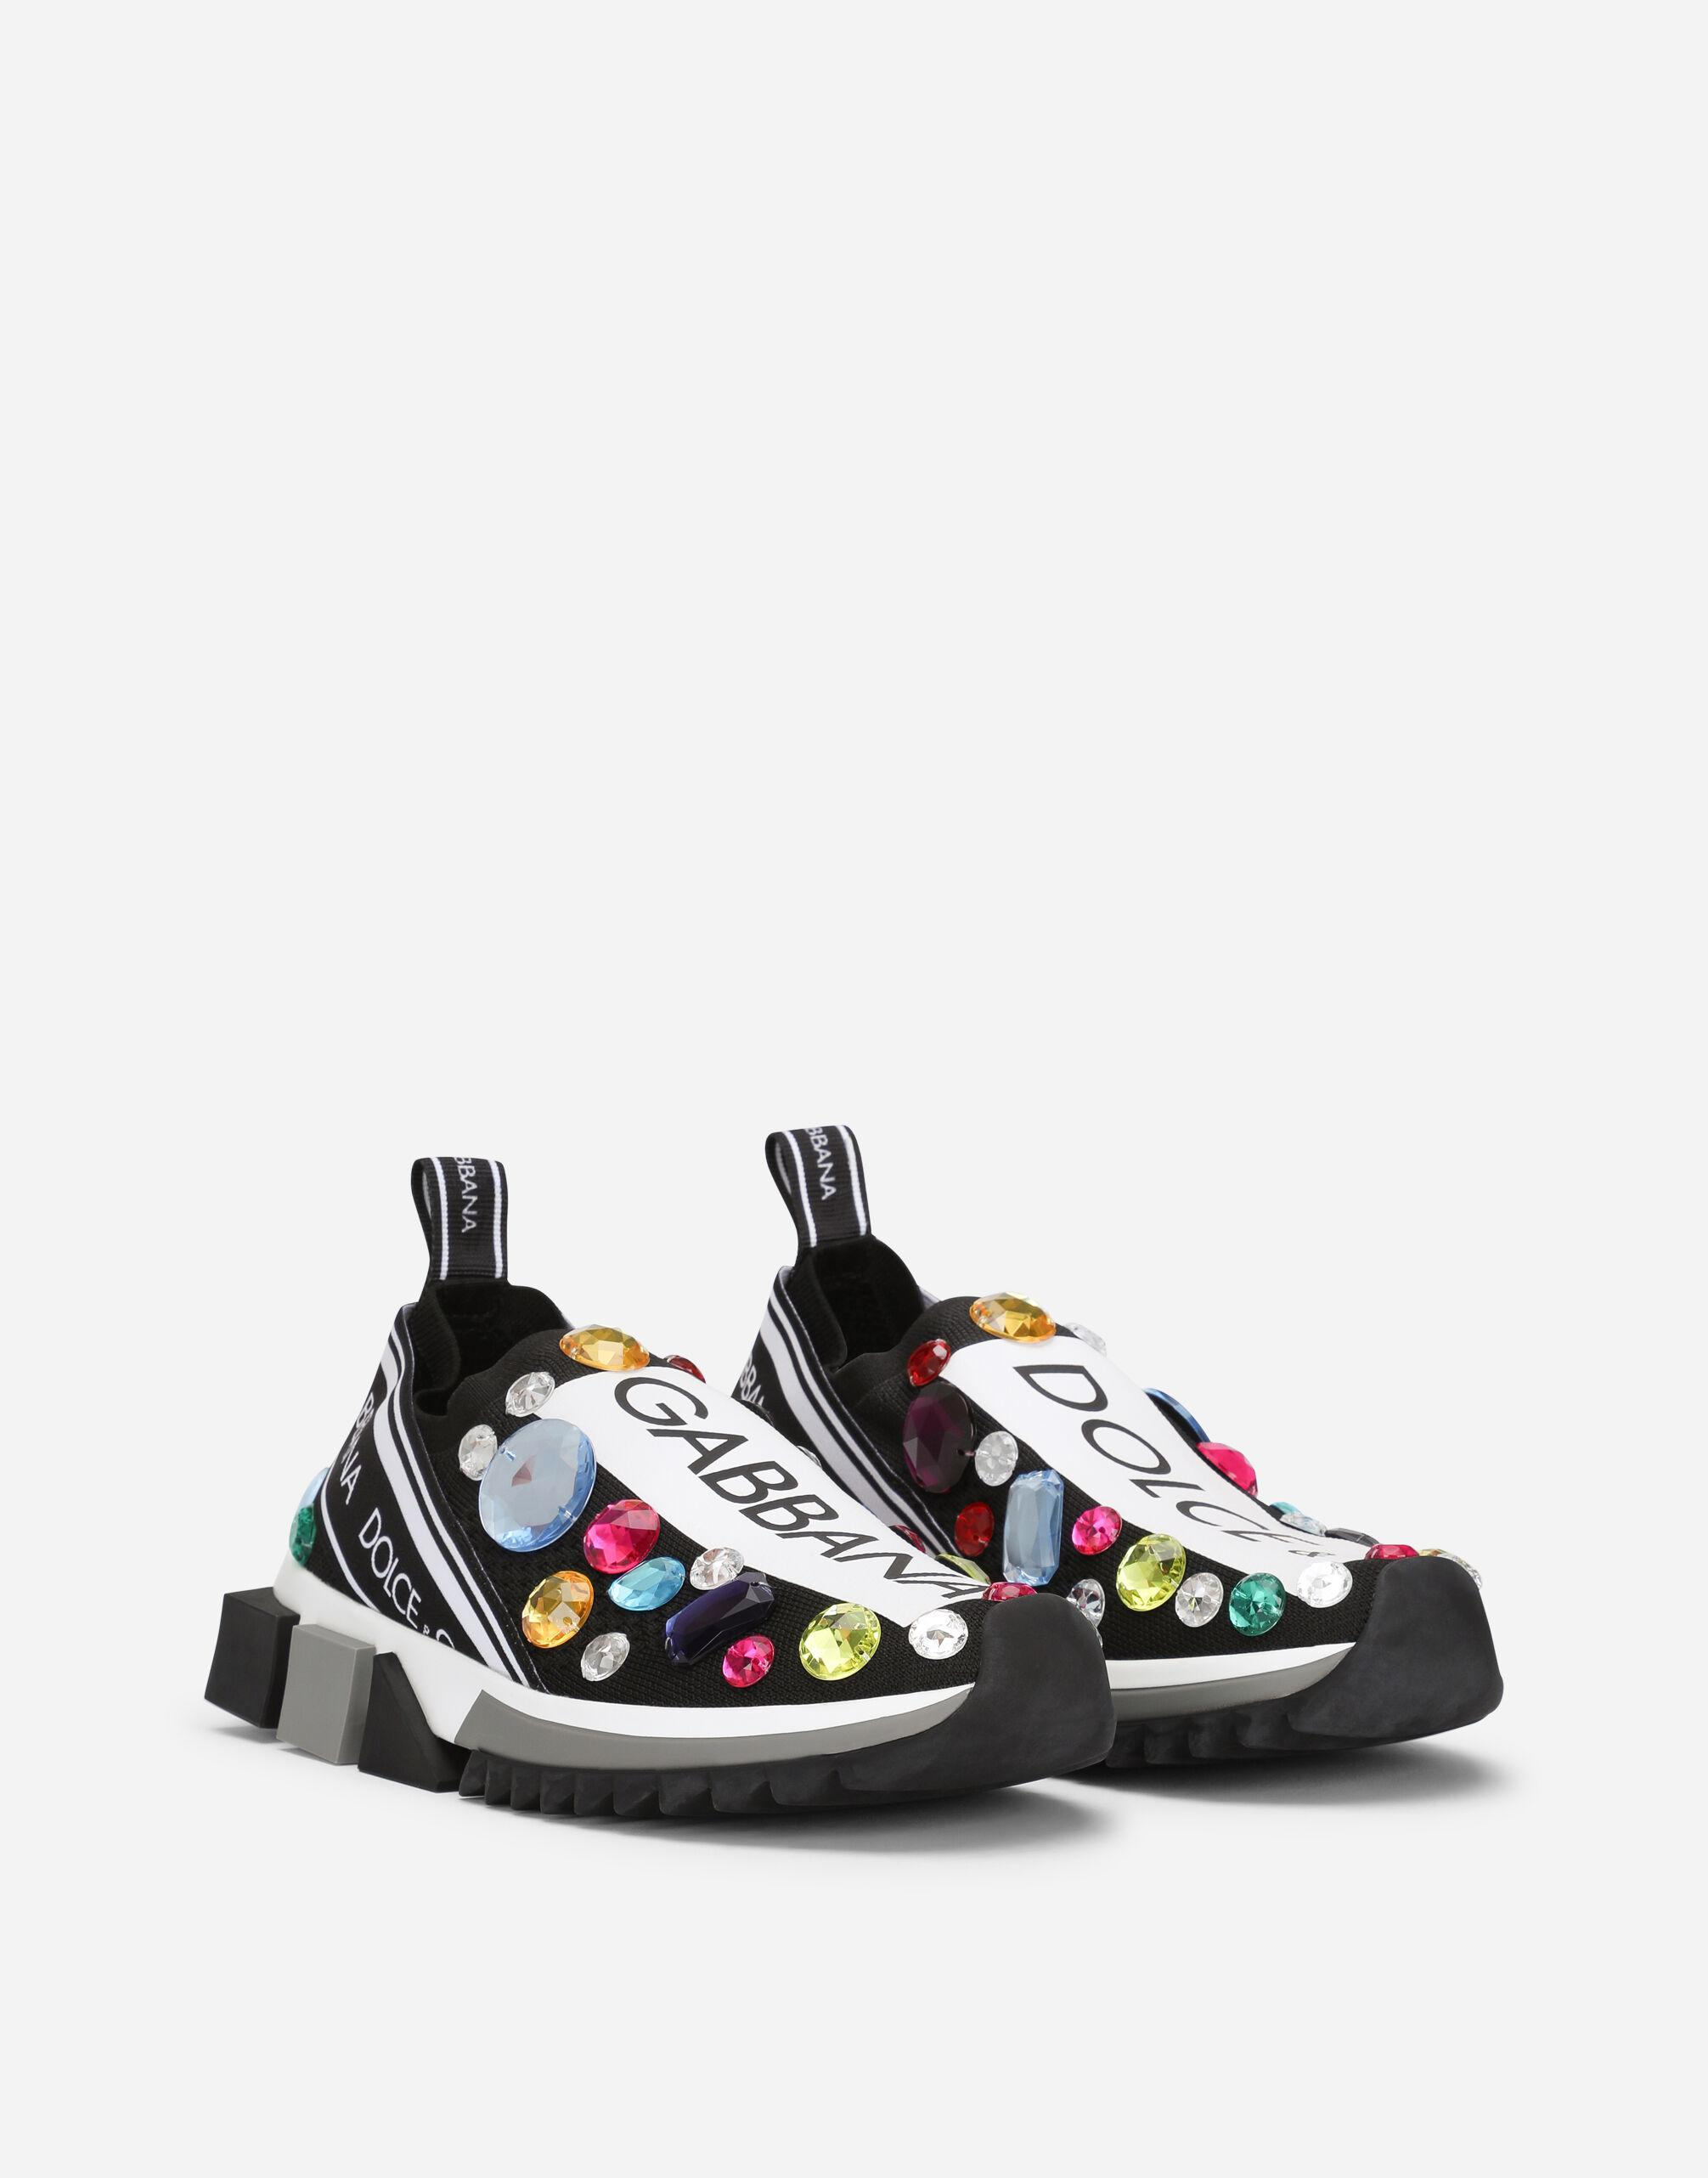 Sorrento sneakers with embroidery 1